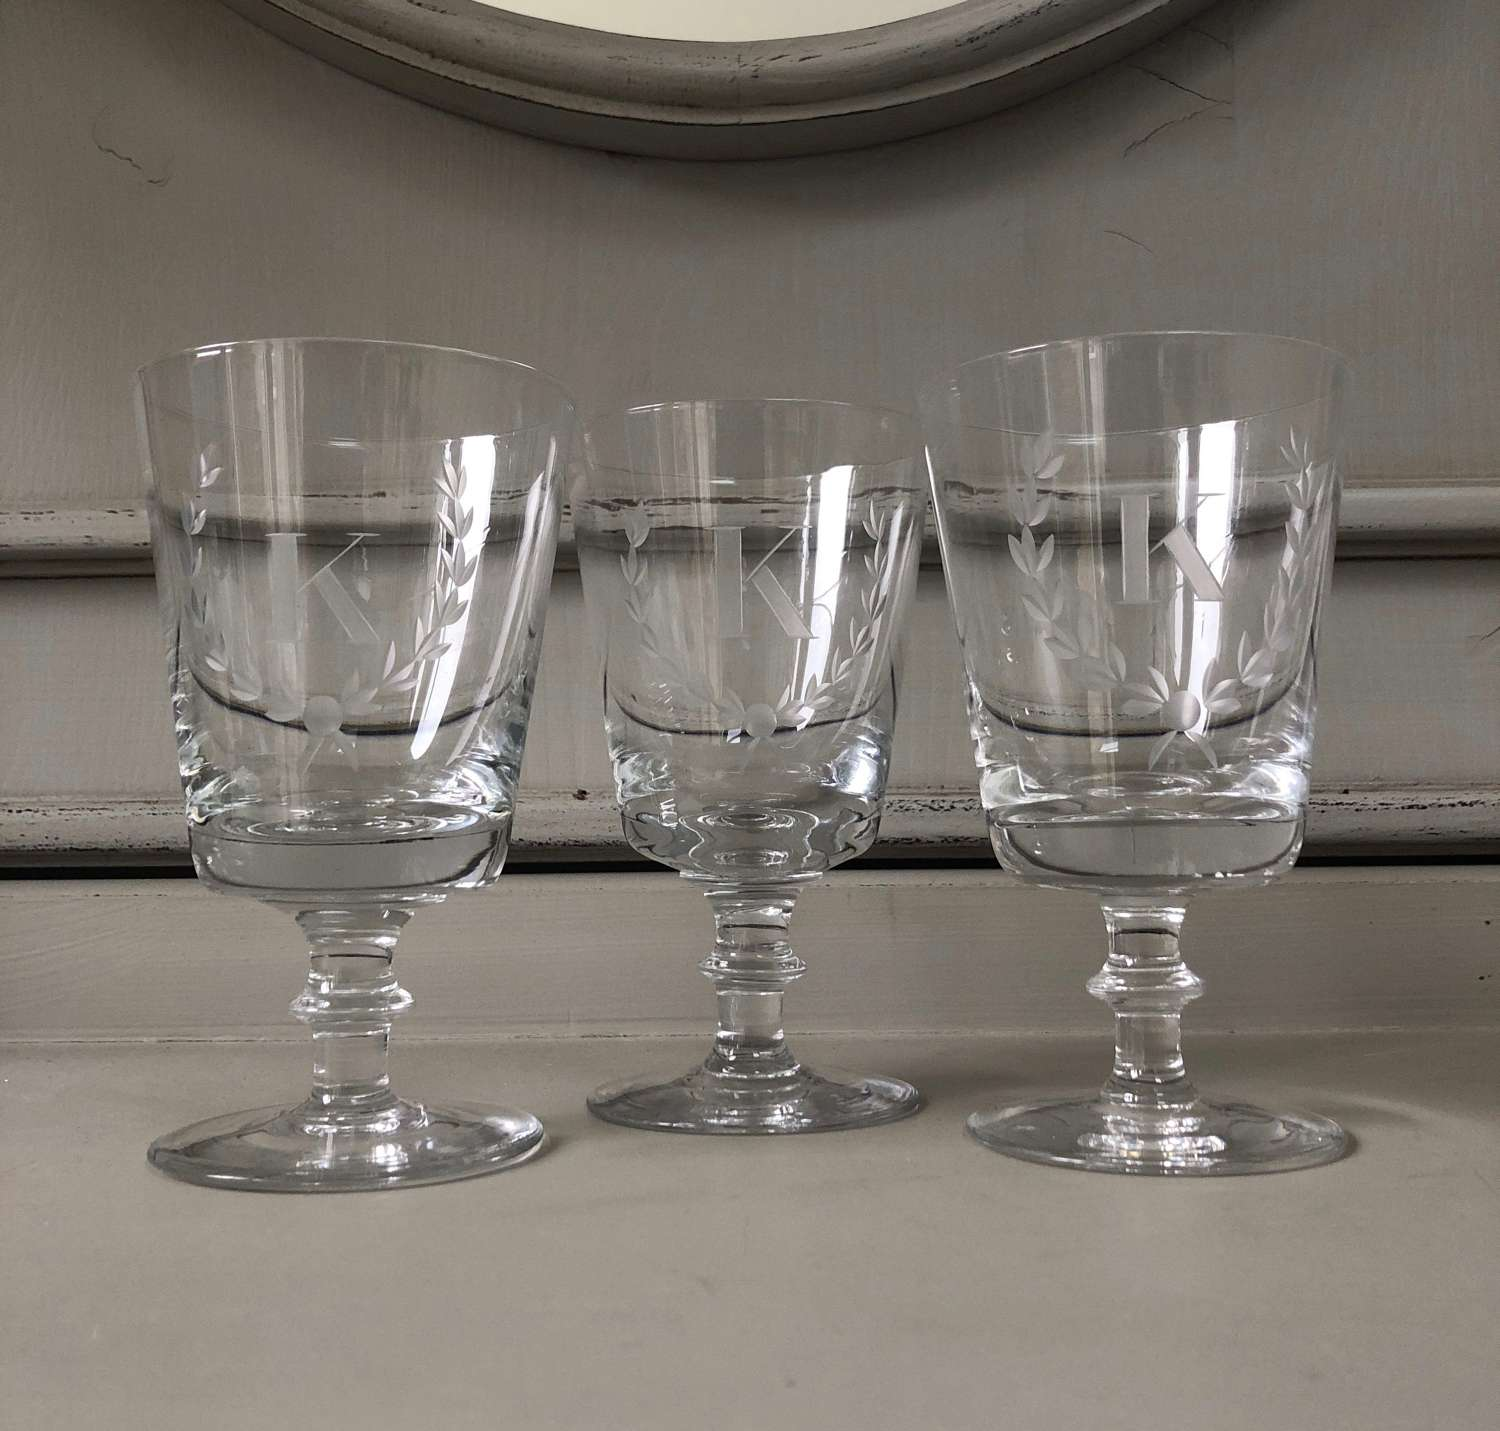 Antique Hand Blown Glasses - Etched K - Three Available